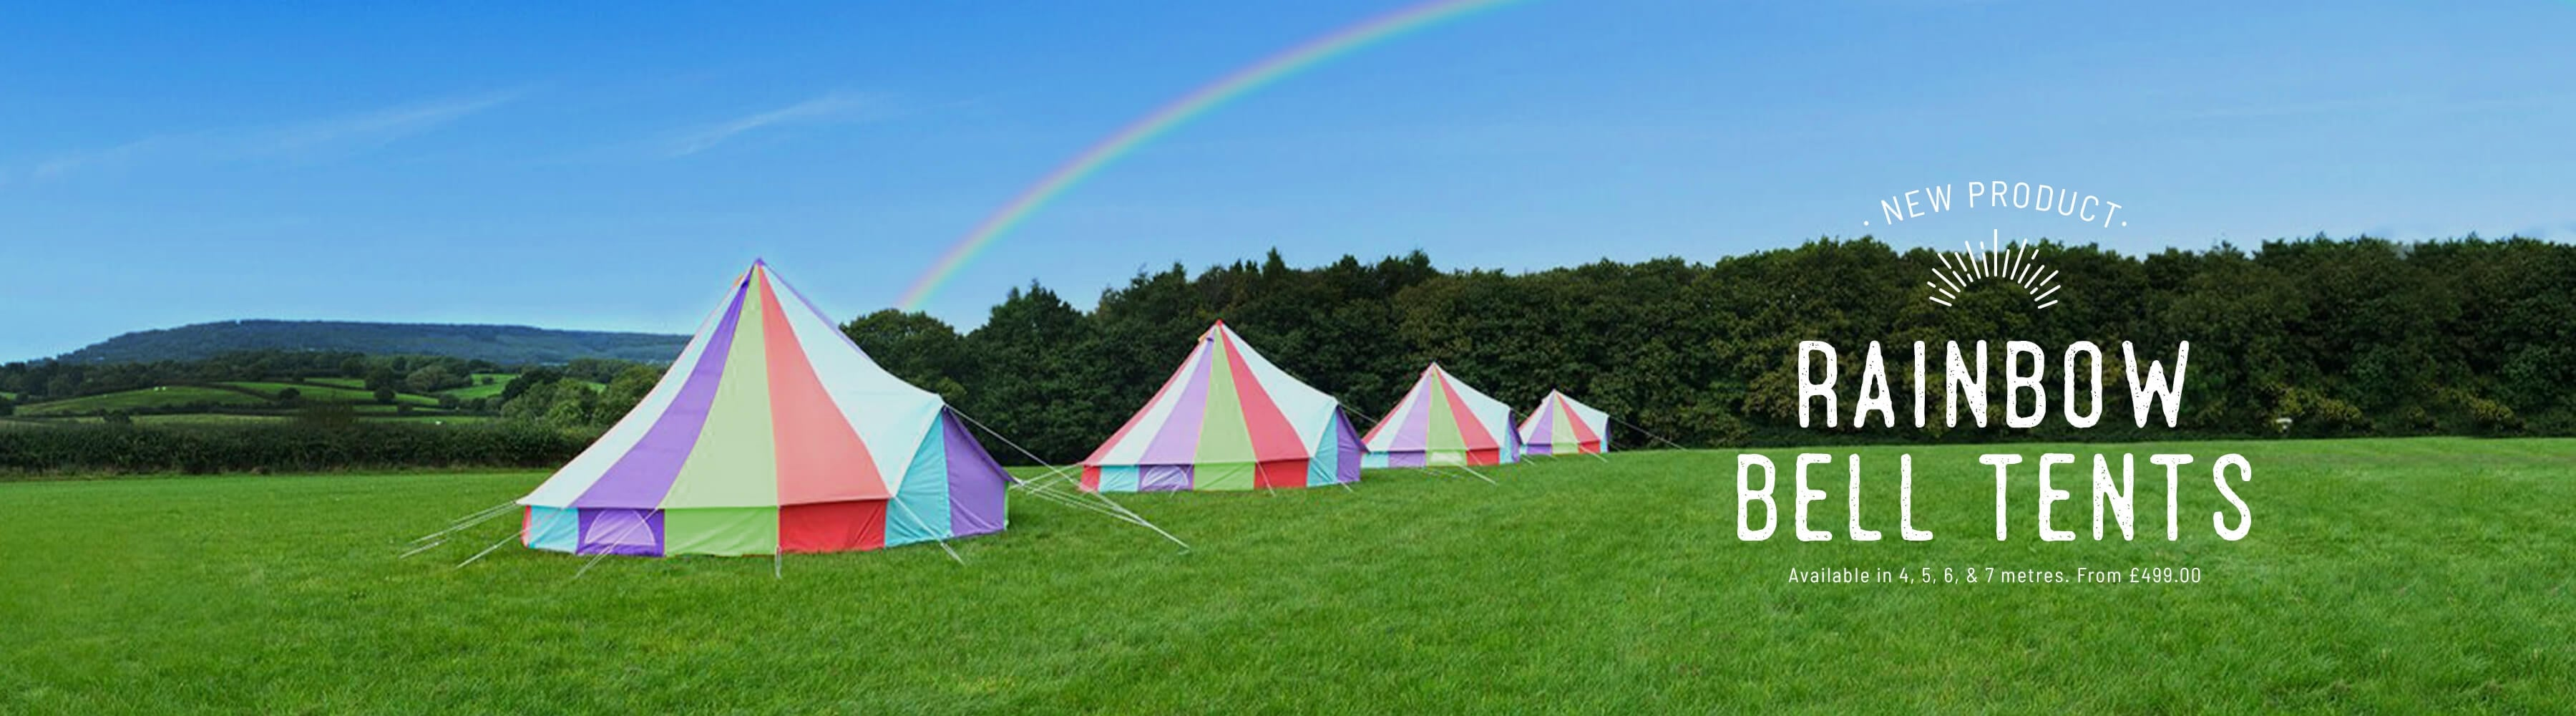 Rainbow Bell Tents & Bell Tents Luxury Family Tents u0026 Glamping Products